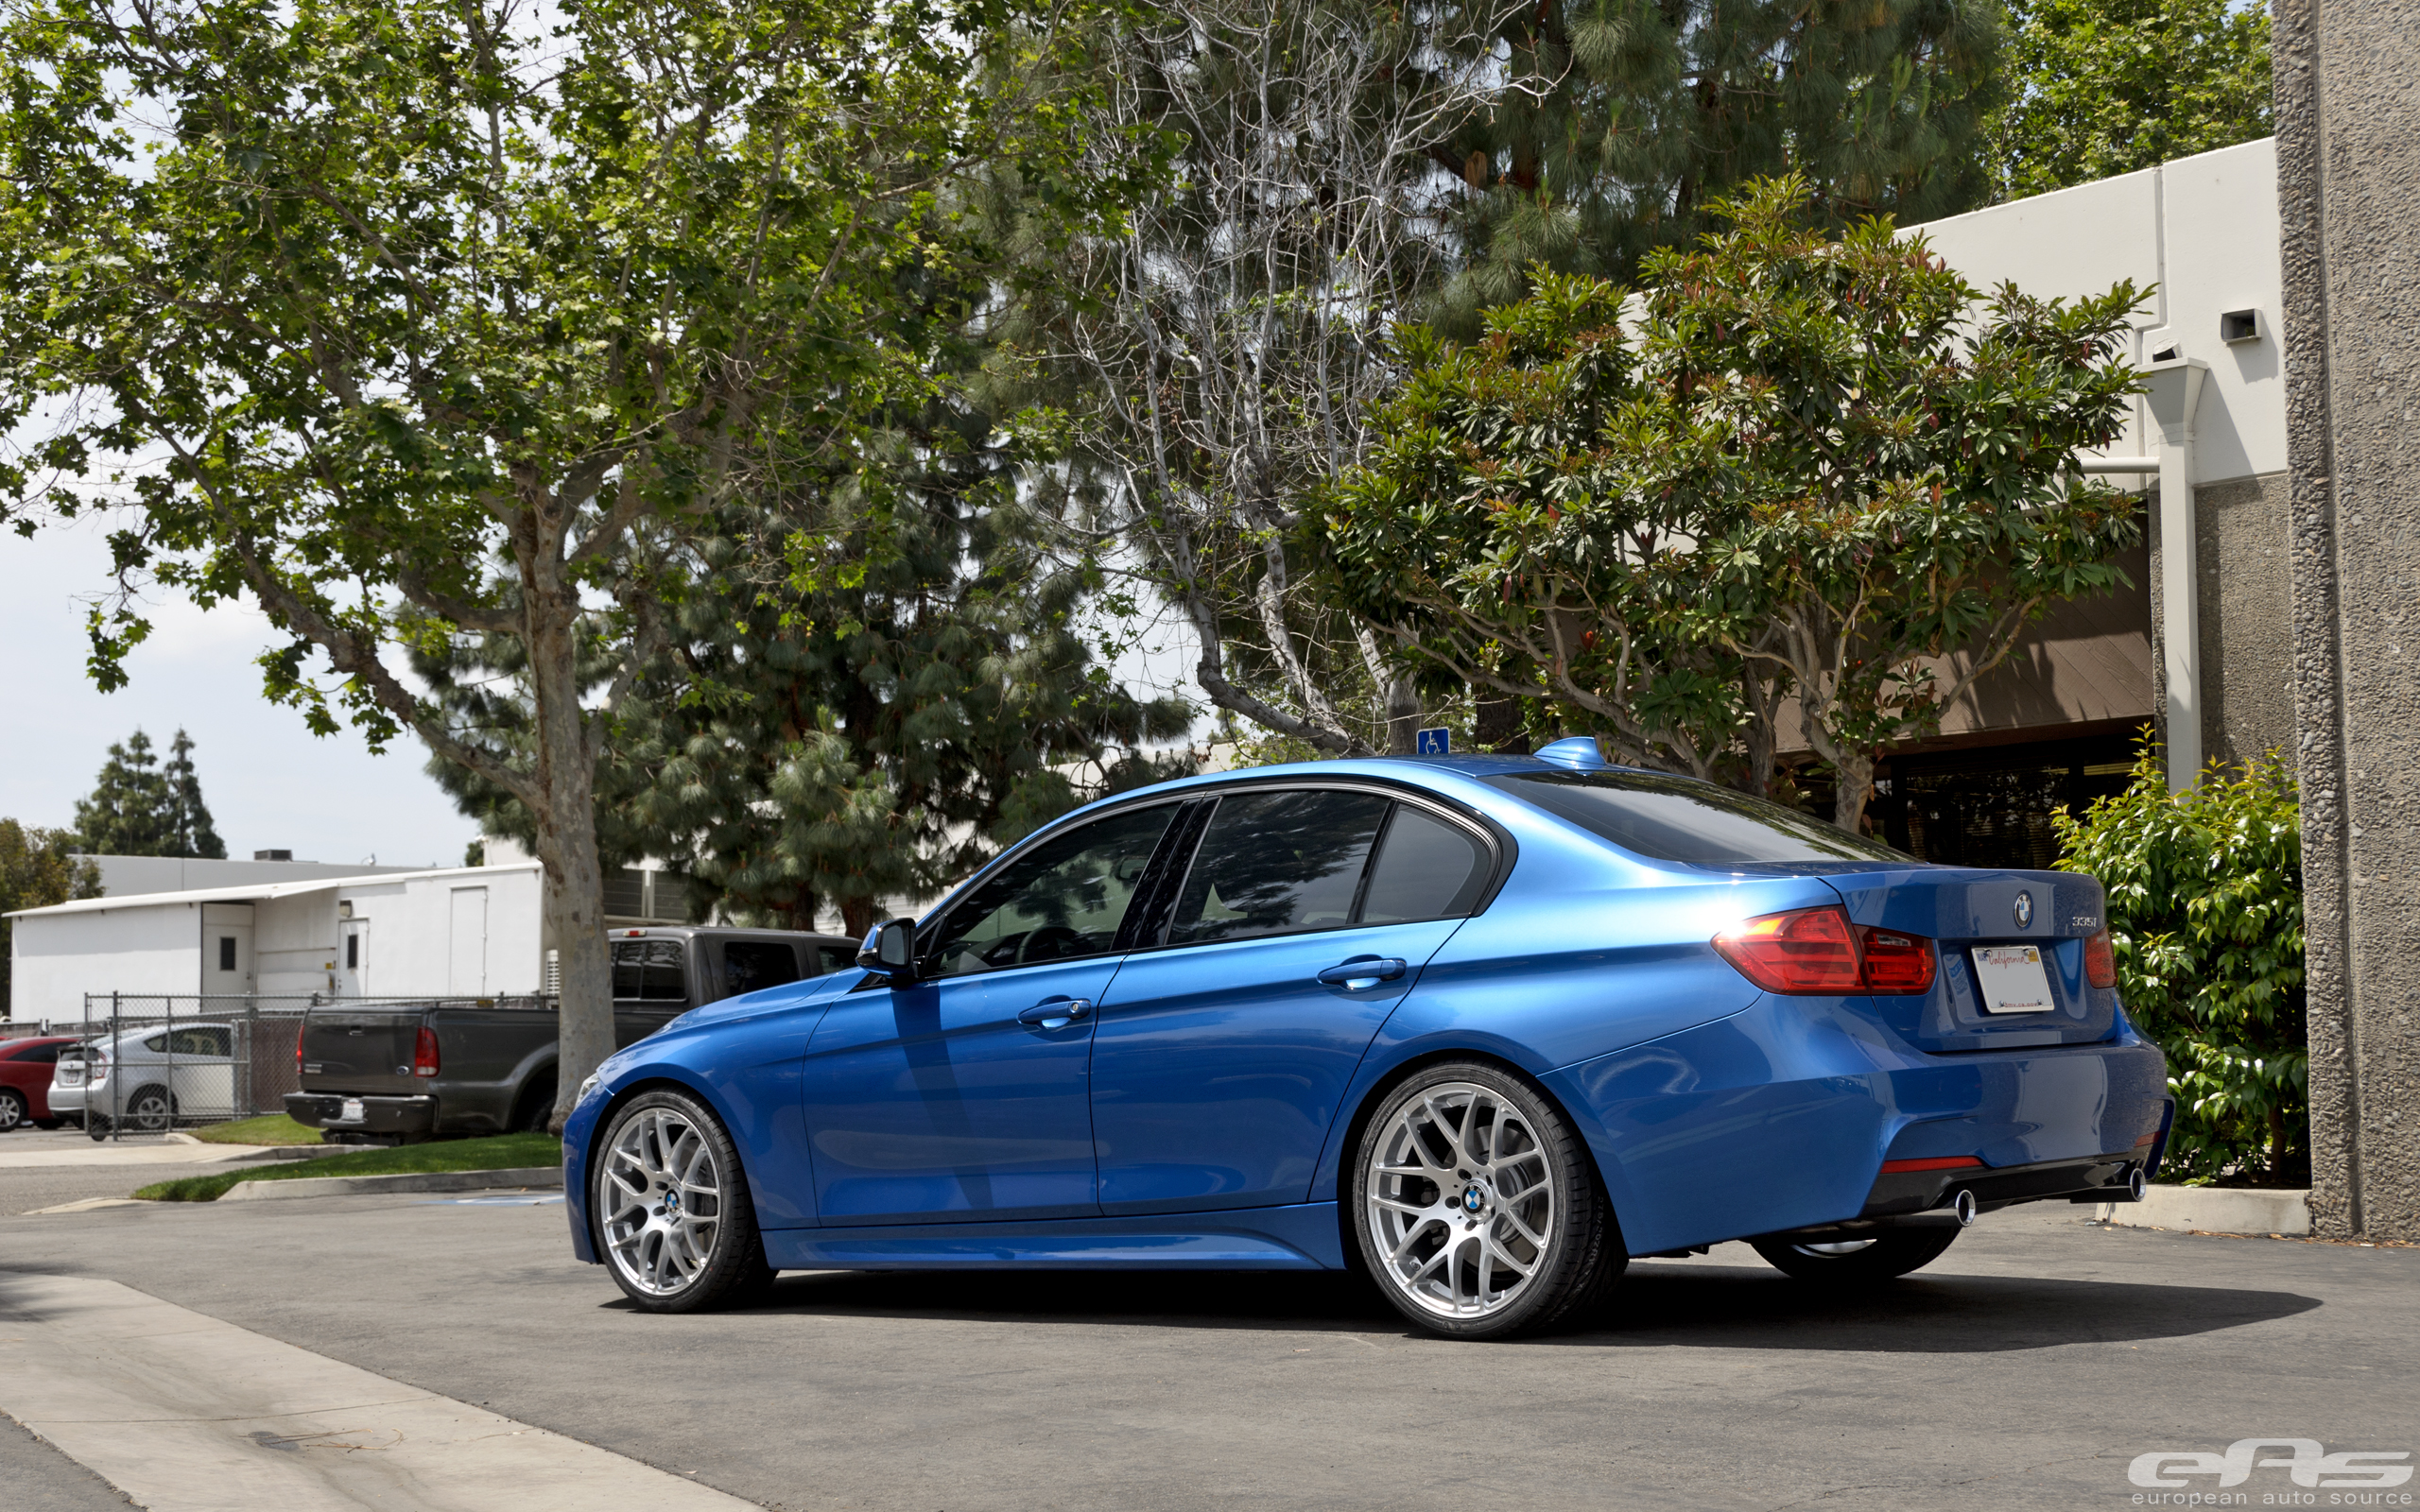 Vmr V710 Wheels Installed On Estoril Blue 335i Bmw